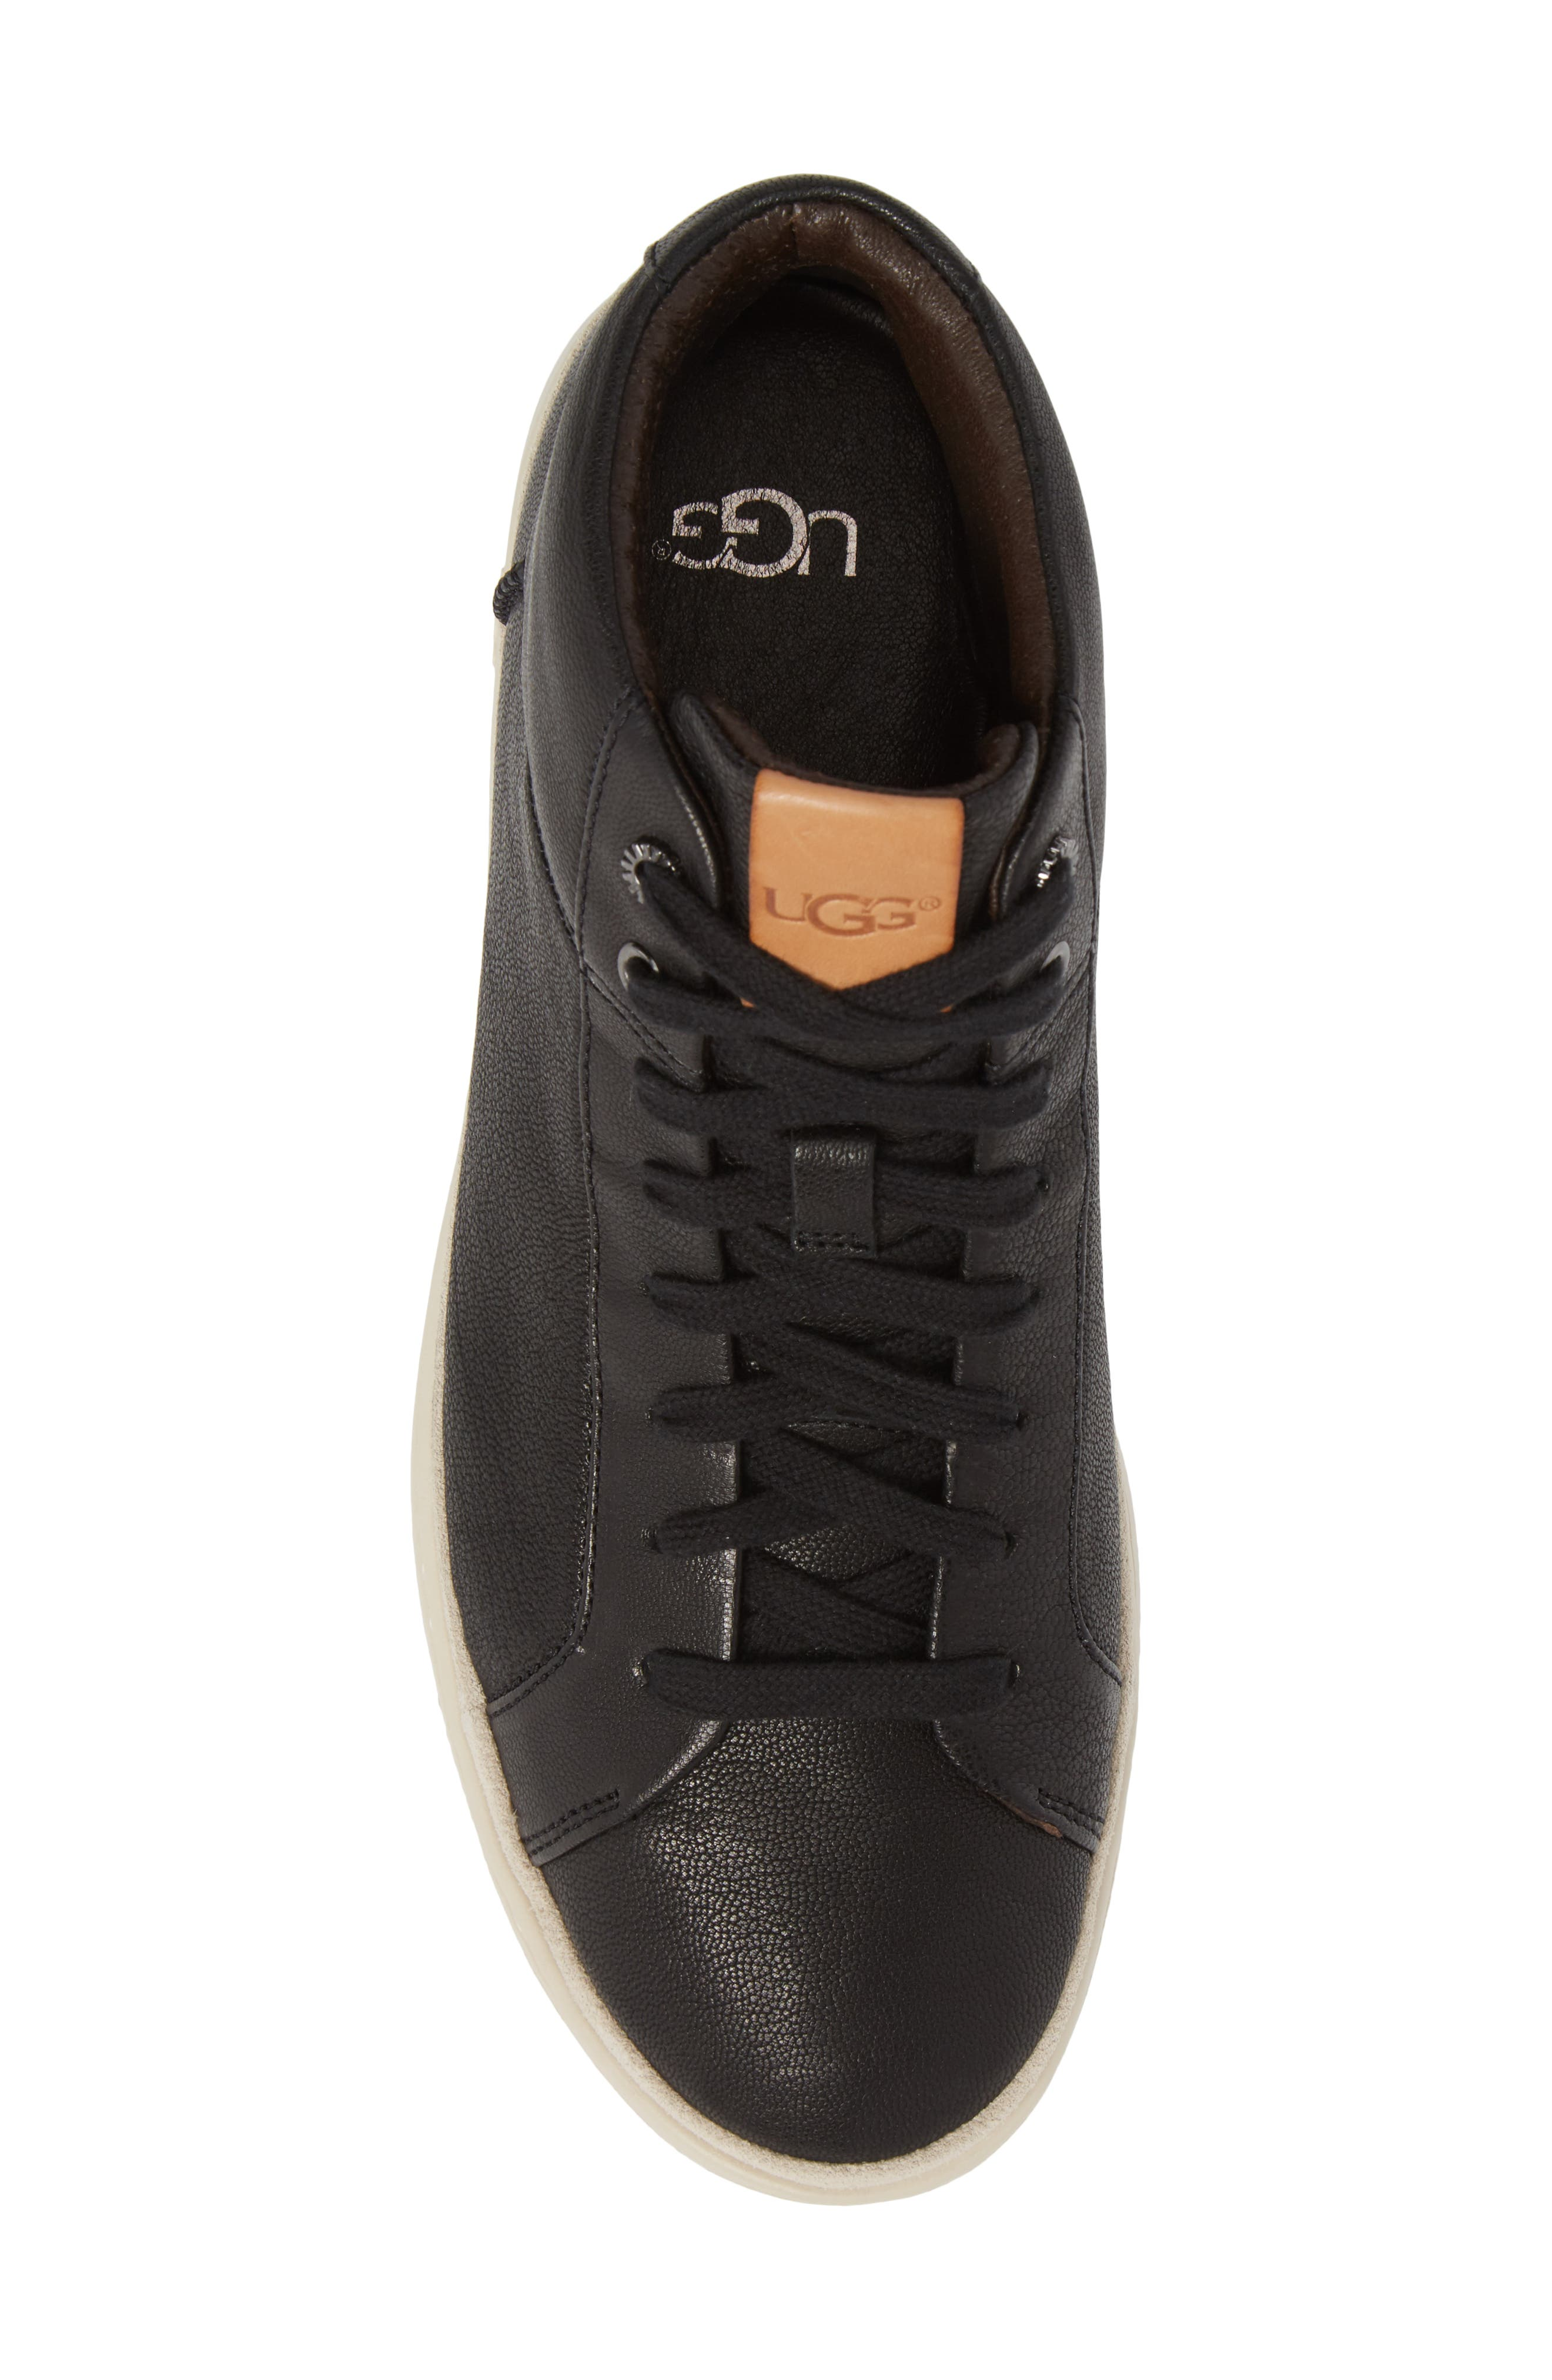 UGG<SUP>®</SUP>, Cali High Top Sneaker, Alternate thumbnail 5, color, BLACK LEATHER